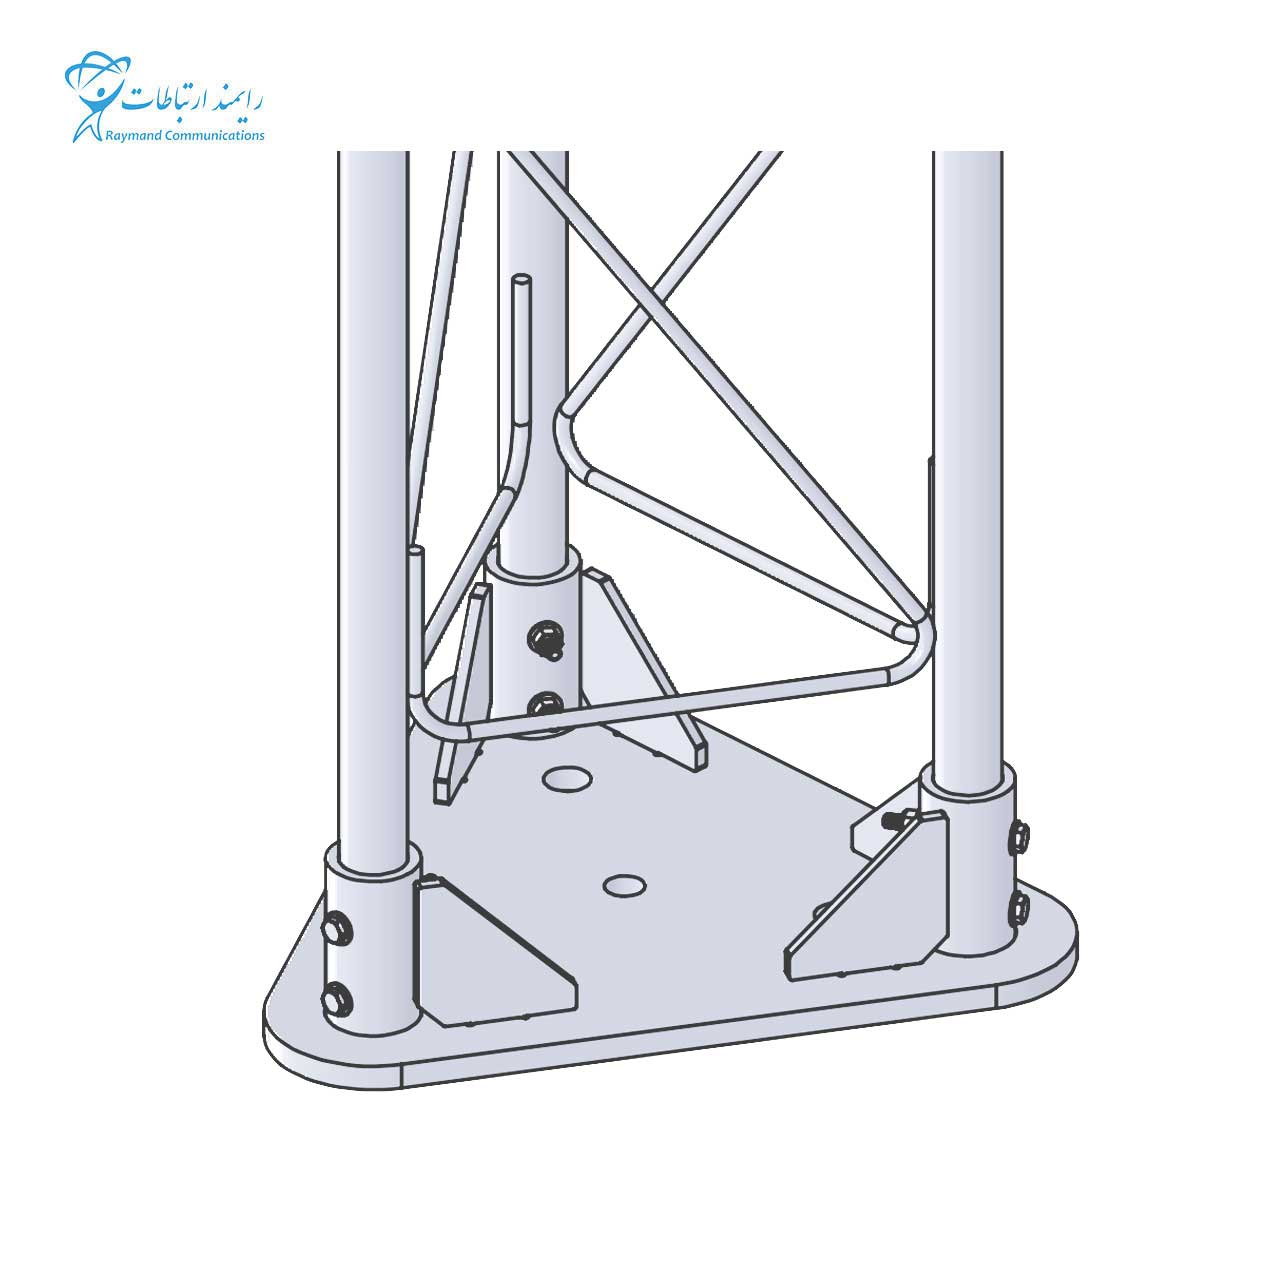 GUYED TOWER TETRAHEDRAL G35